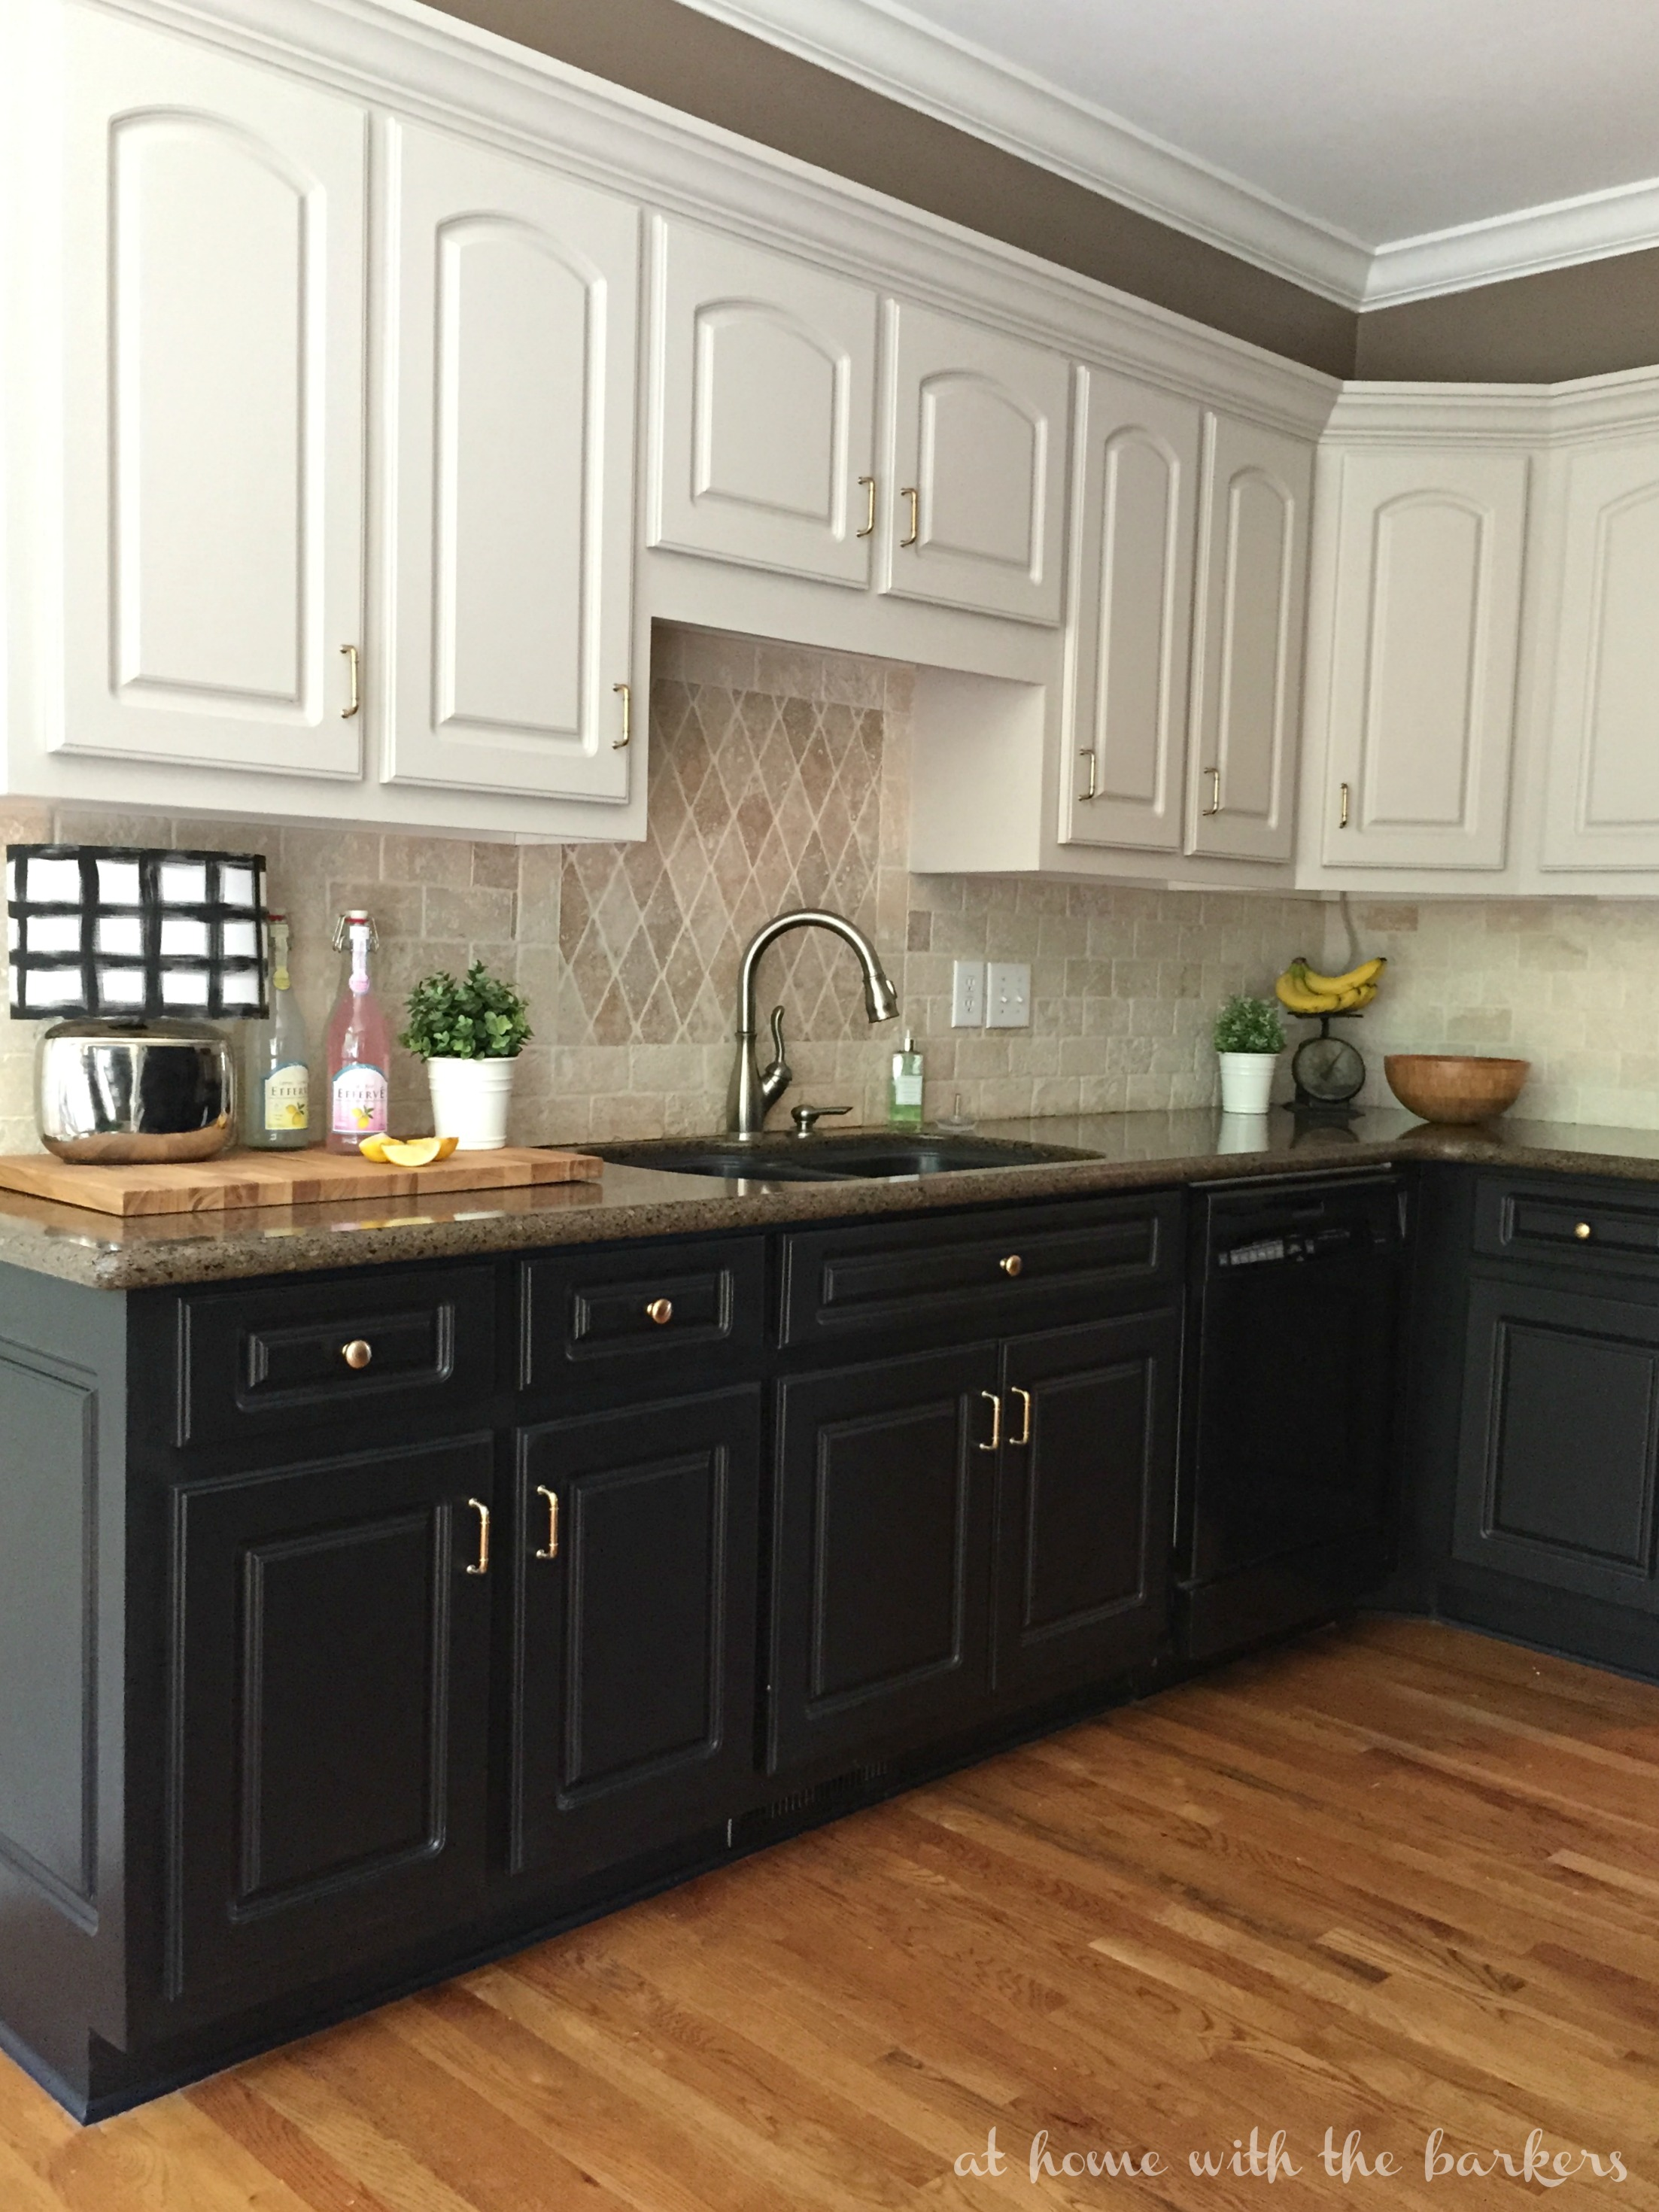 white or black kitchen cabinets black kitchen cabinets the at home with the 29106